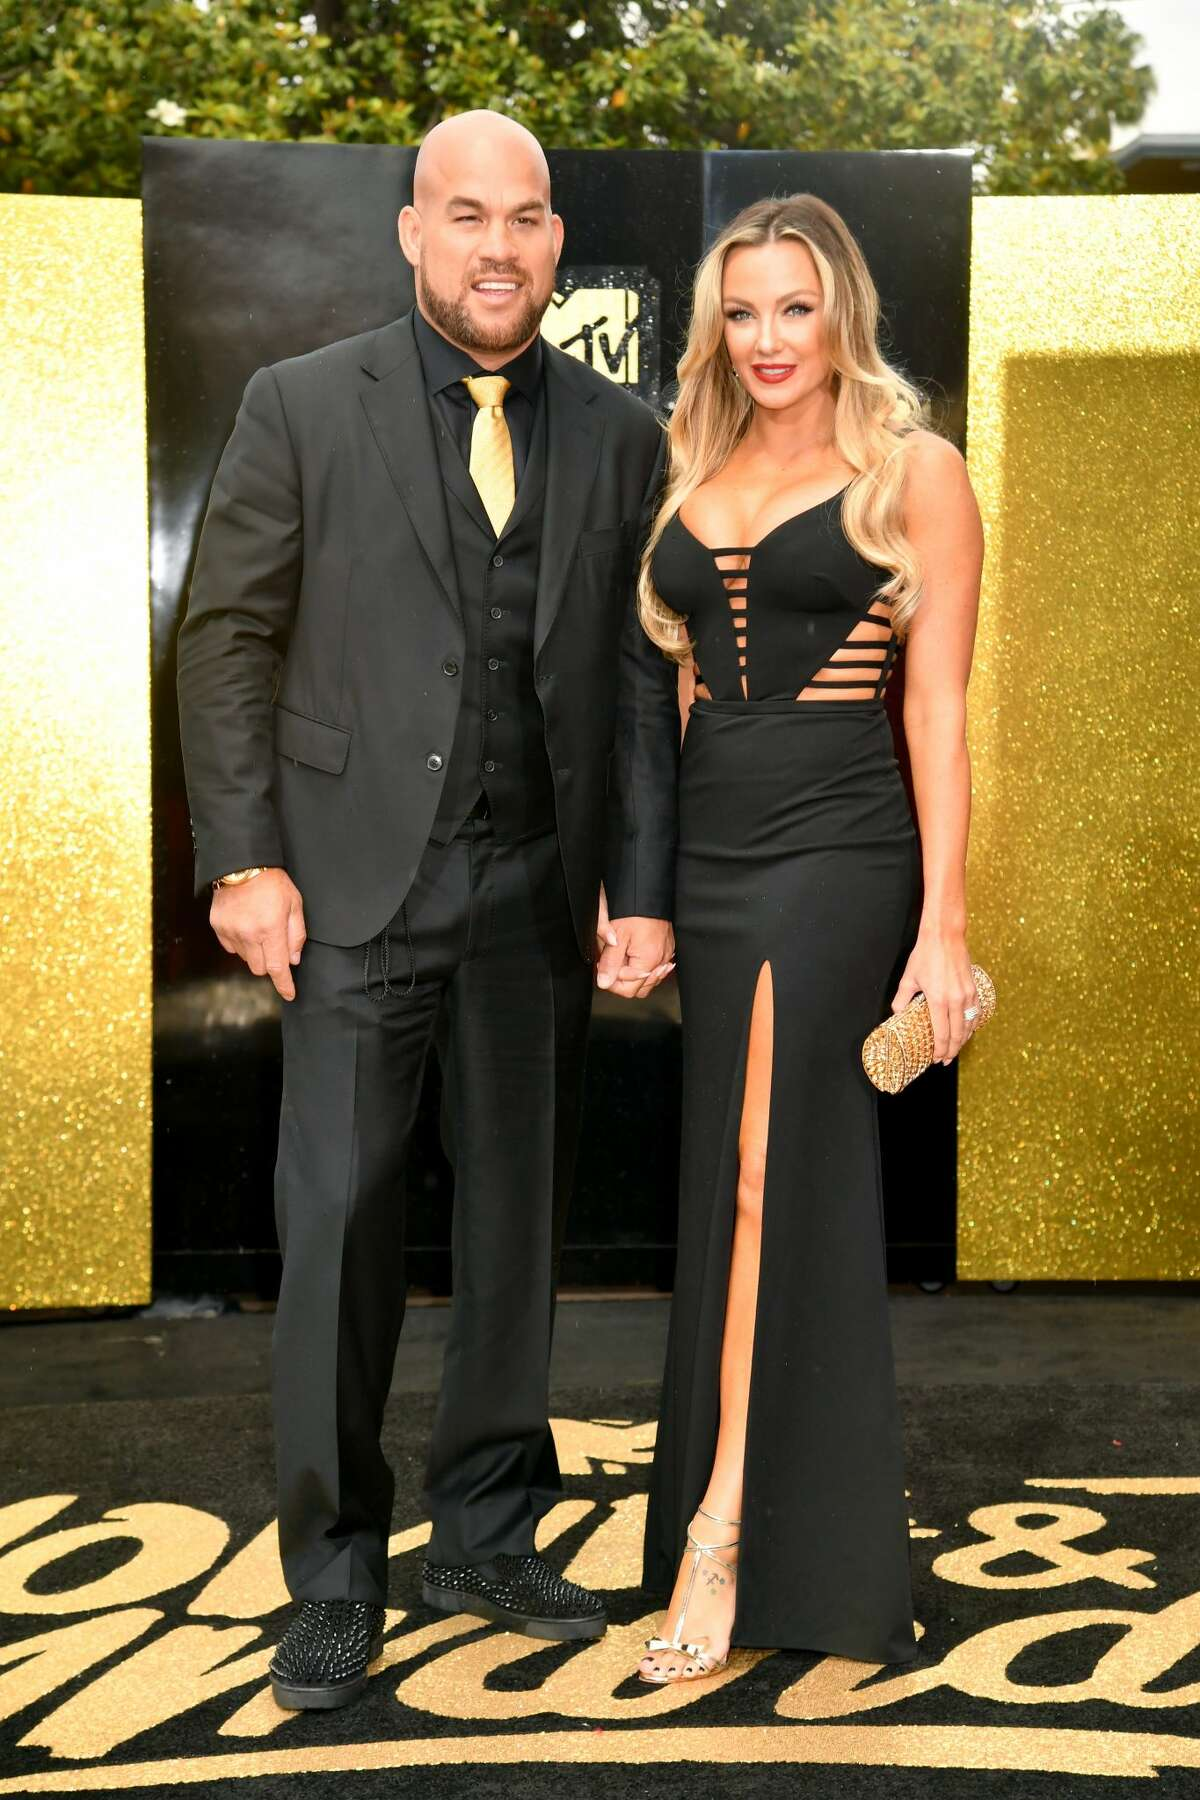 Worst: Tito Ortiz and Amber Nicole Miller know how to match in high school homecoming dance sort of way.